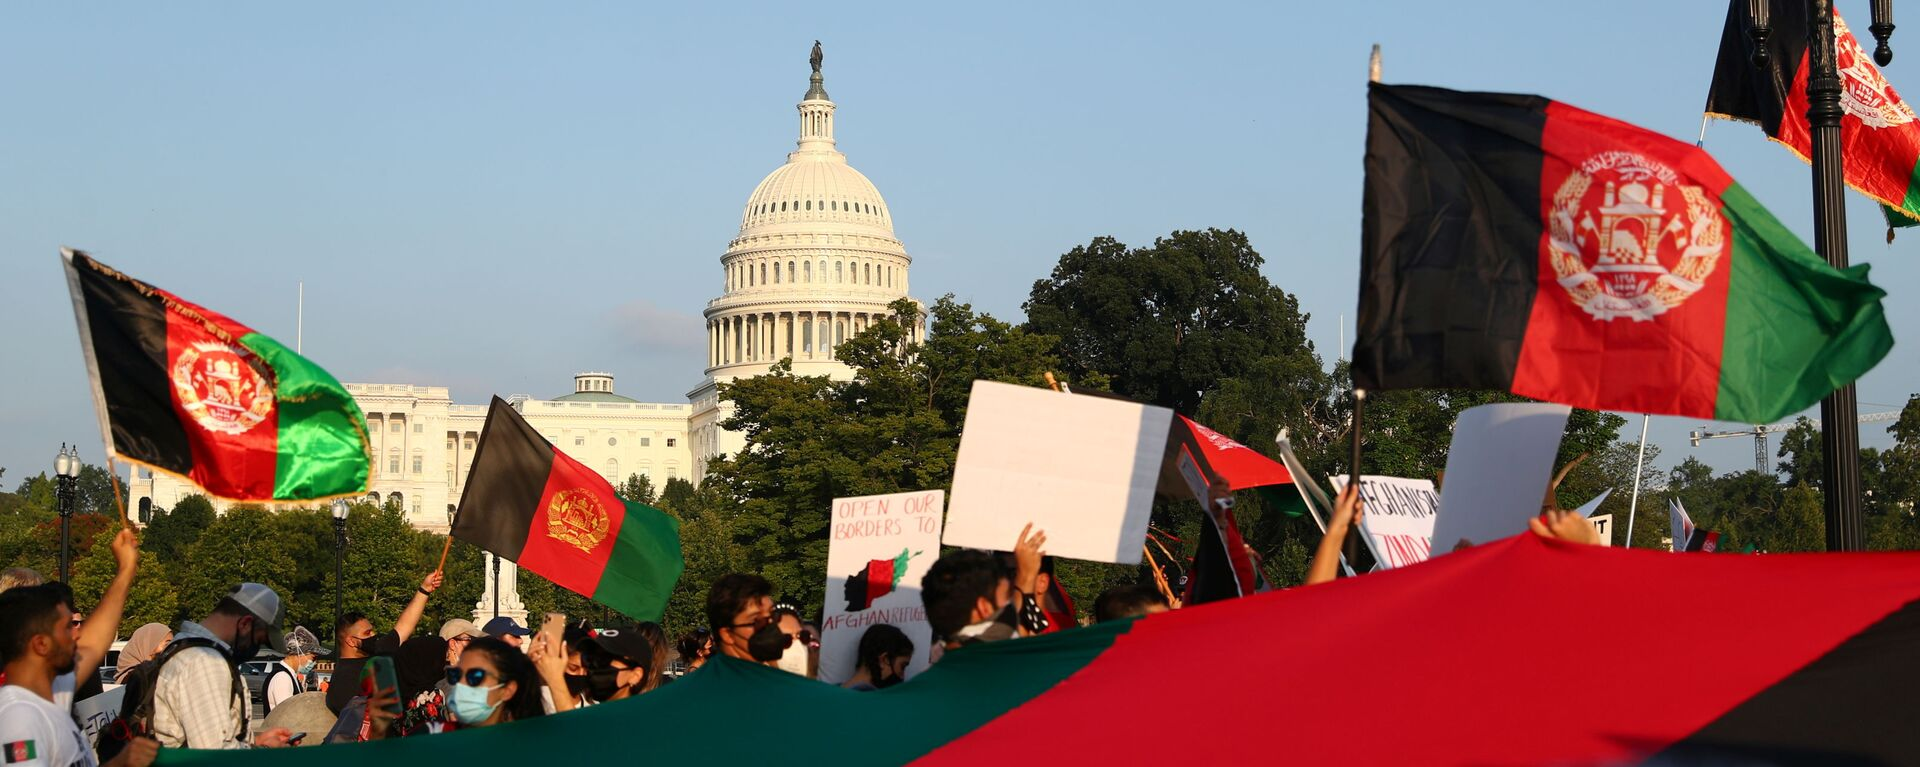 Protesters holding Afghanistan flags take part in a demonstration challenging the transparency of the evacuation process from Kabul Airport, near the U.S. Capitol, in Washington, U.S., August 28, 2021. REUTERS/Tom Brenner - Sputnik International, 1920, 31.08.2021